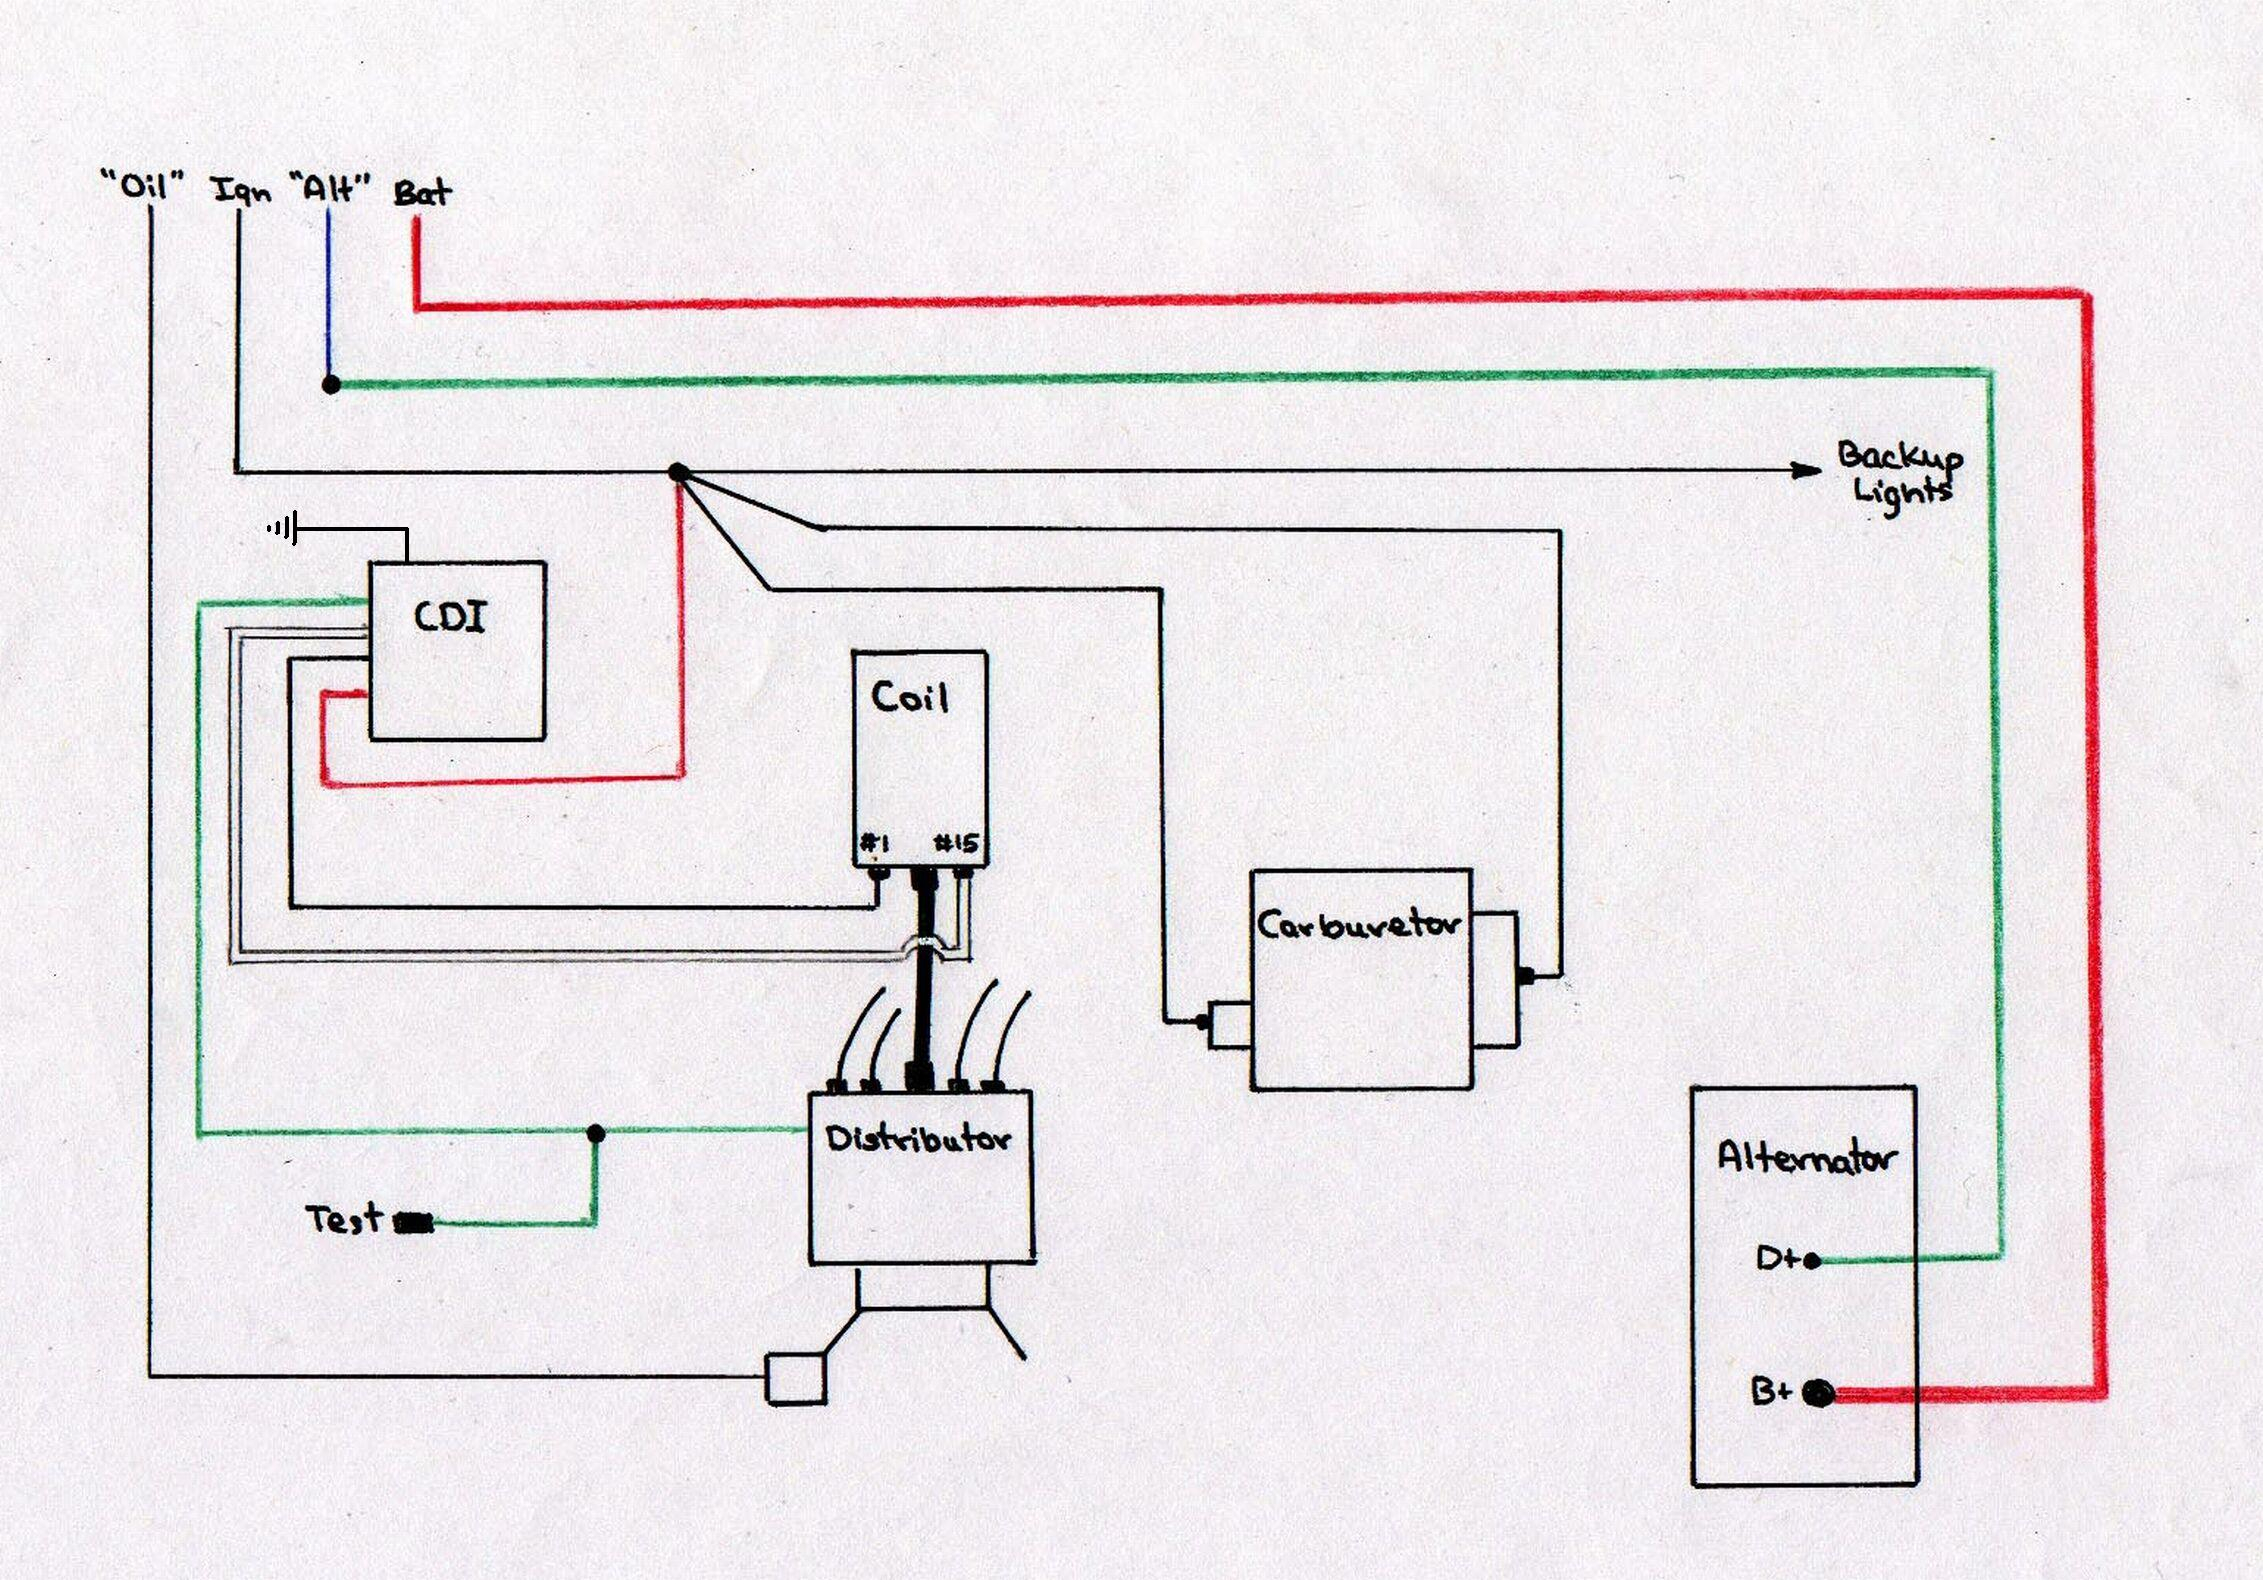 Kasea 50cc Scooter Engine Diagram Roketa 50Cc Scooter Wiring – Kasea 150 Wiring Diagram